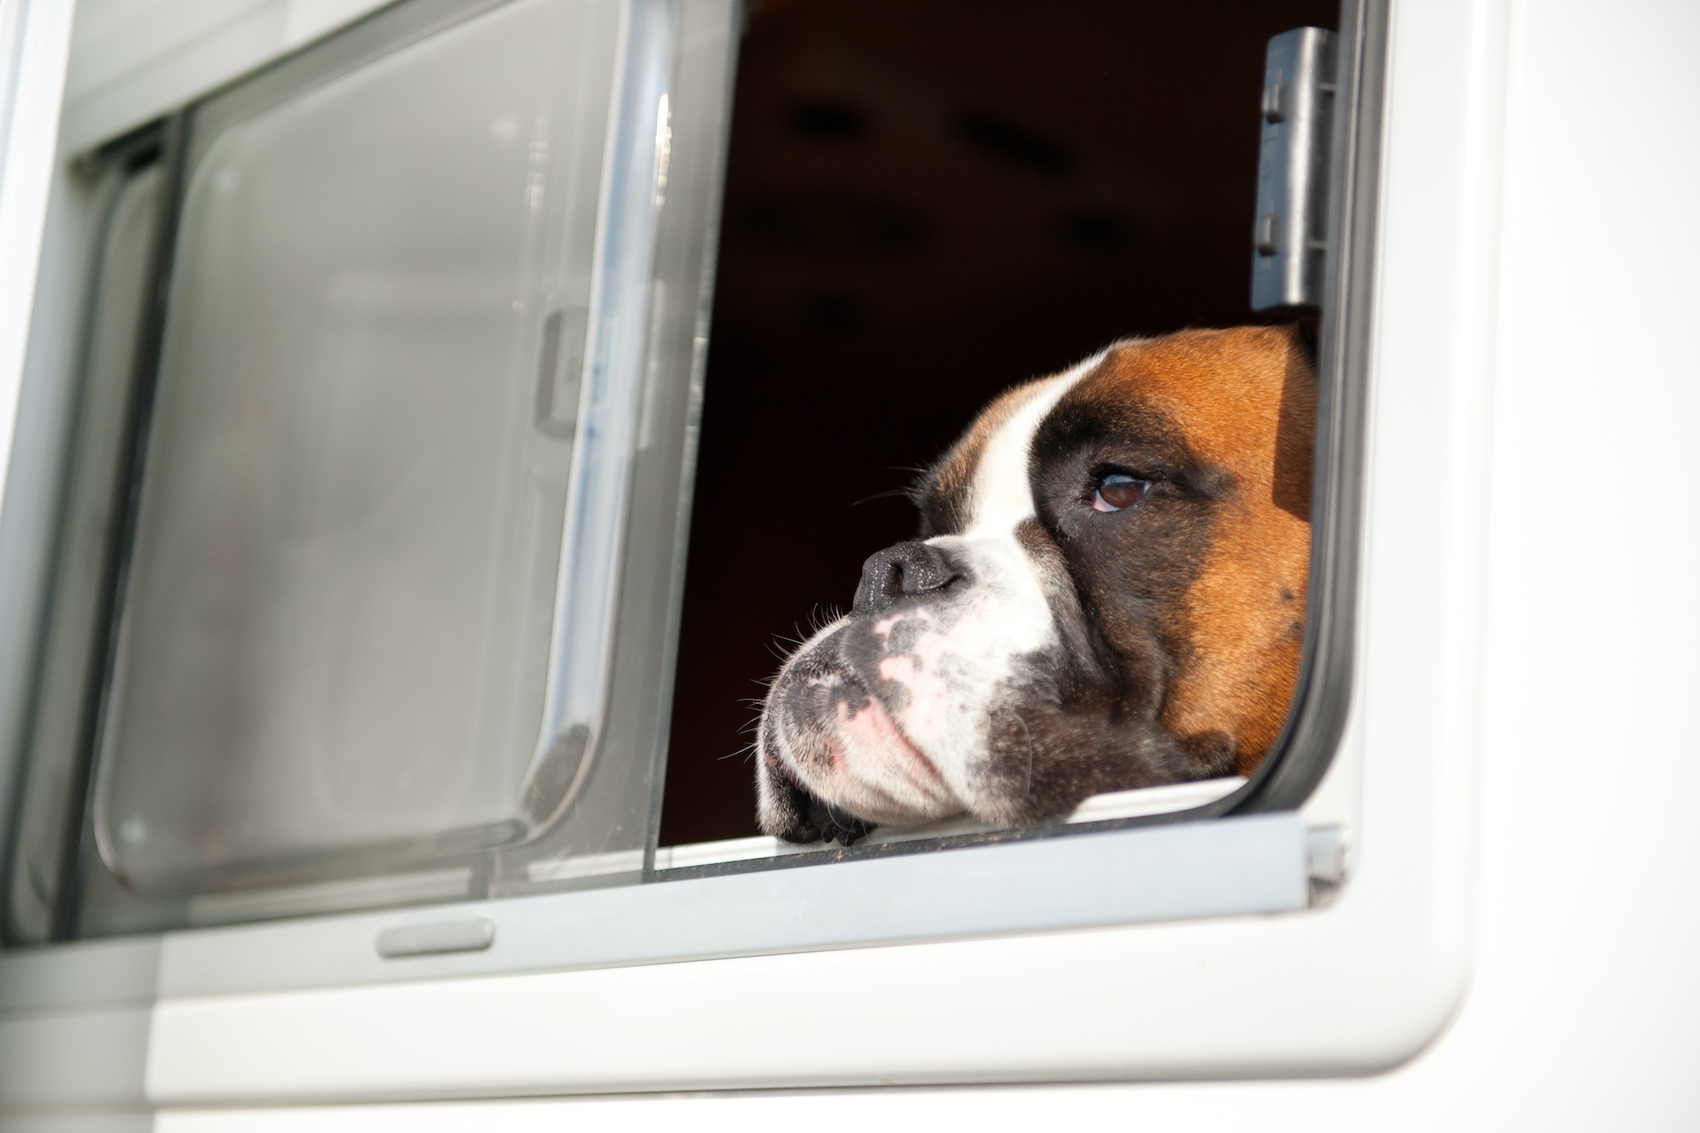 Read more about the article Campingurlaub mit Hund